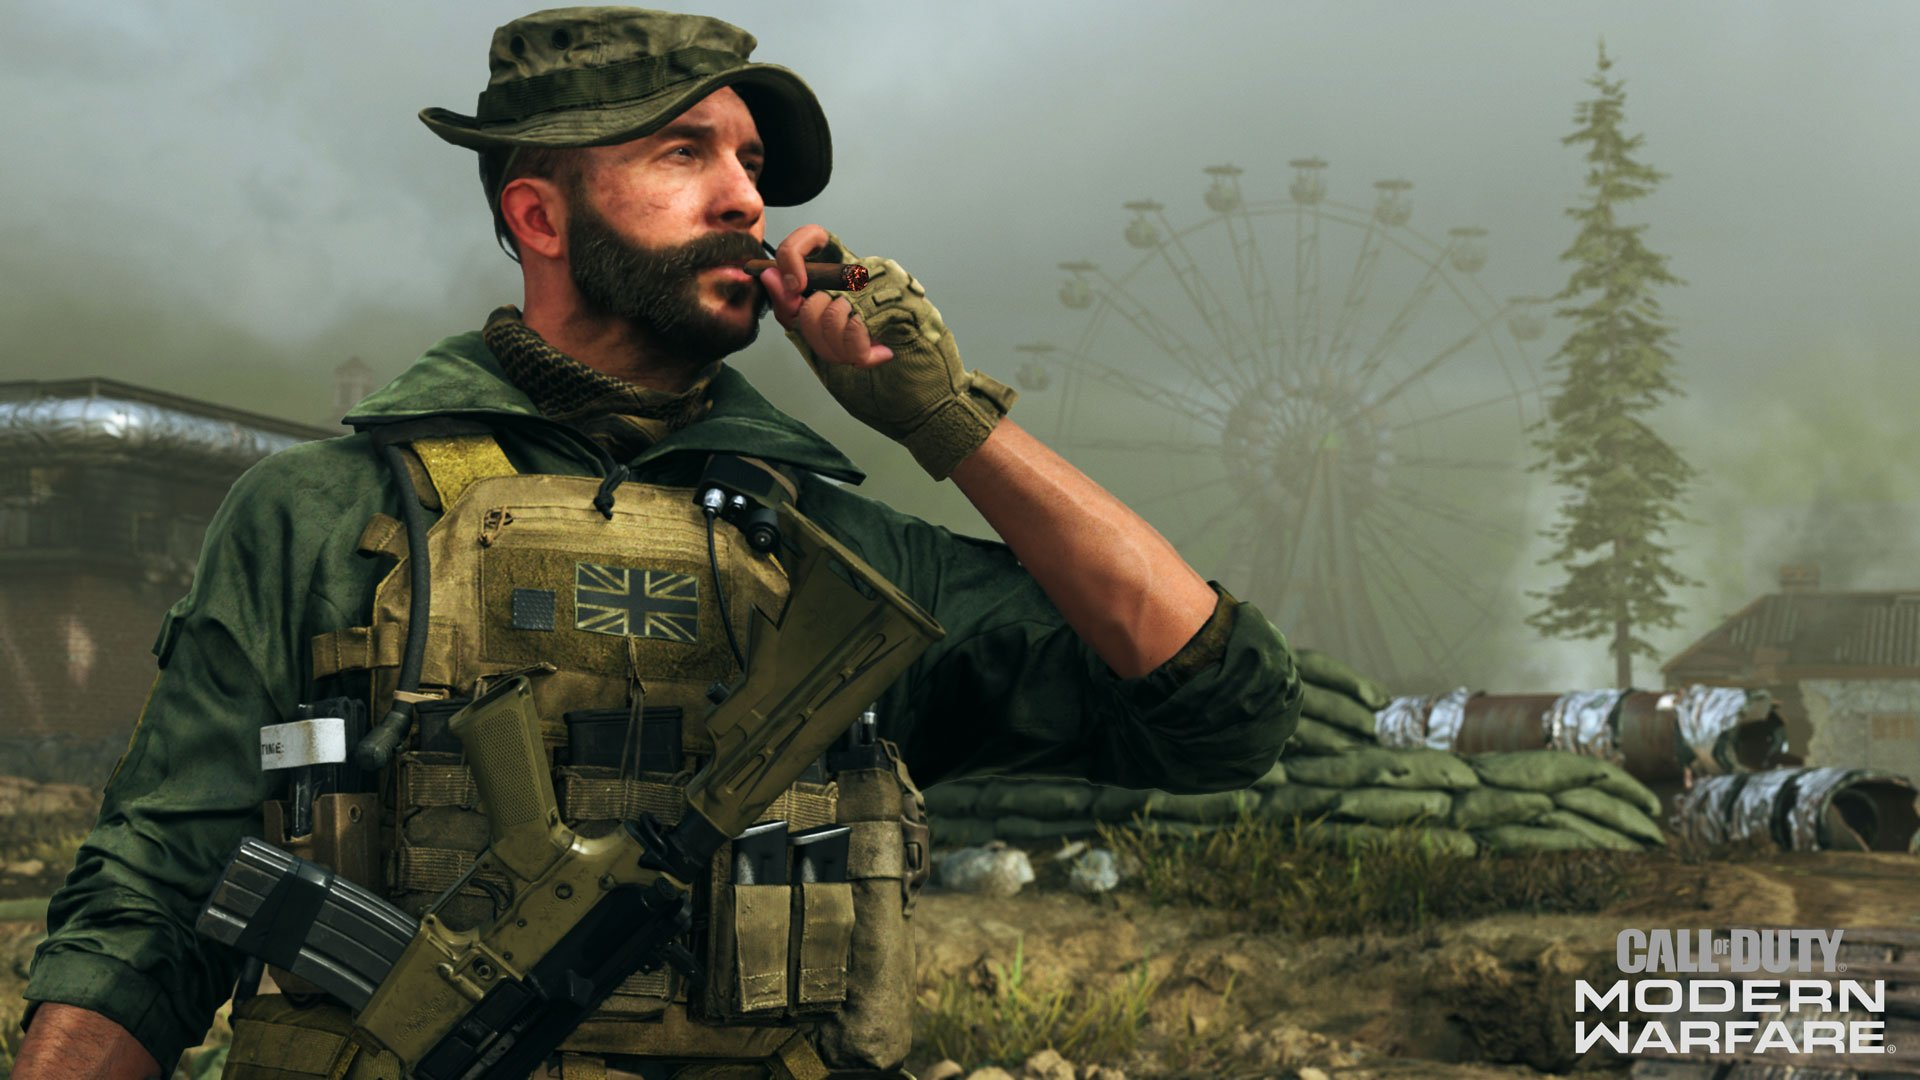 Call of duty modern warfare season four warzone captain price roadmap patch notes